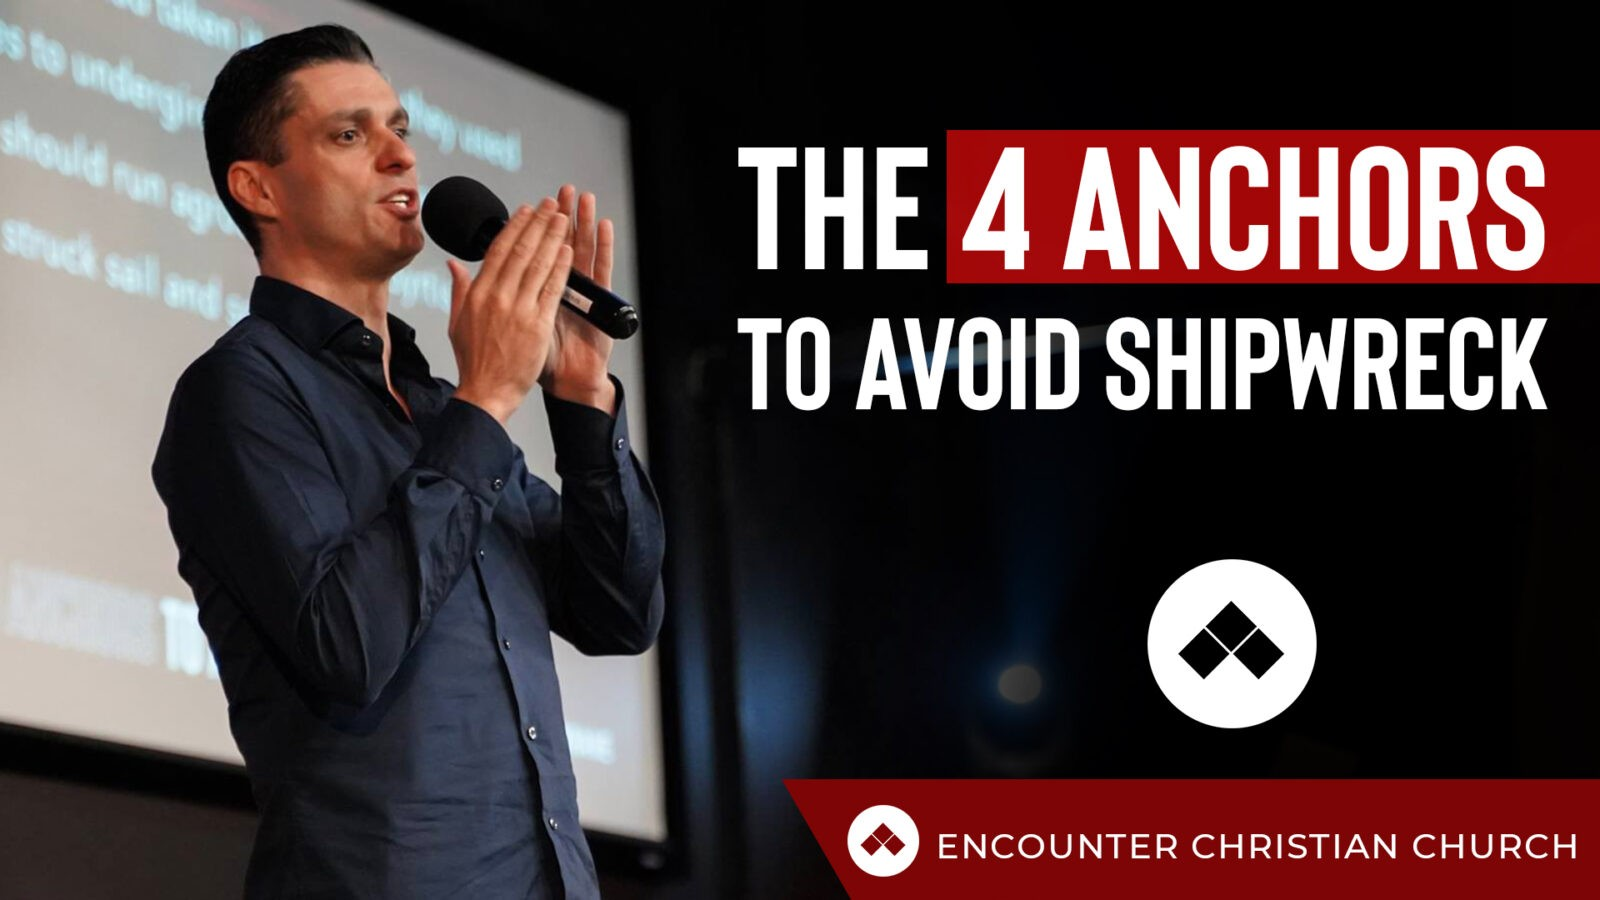 The 4 Anchors to Avoid Shipwreck